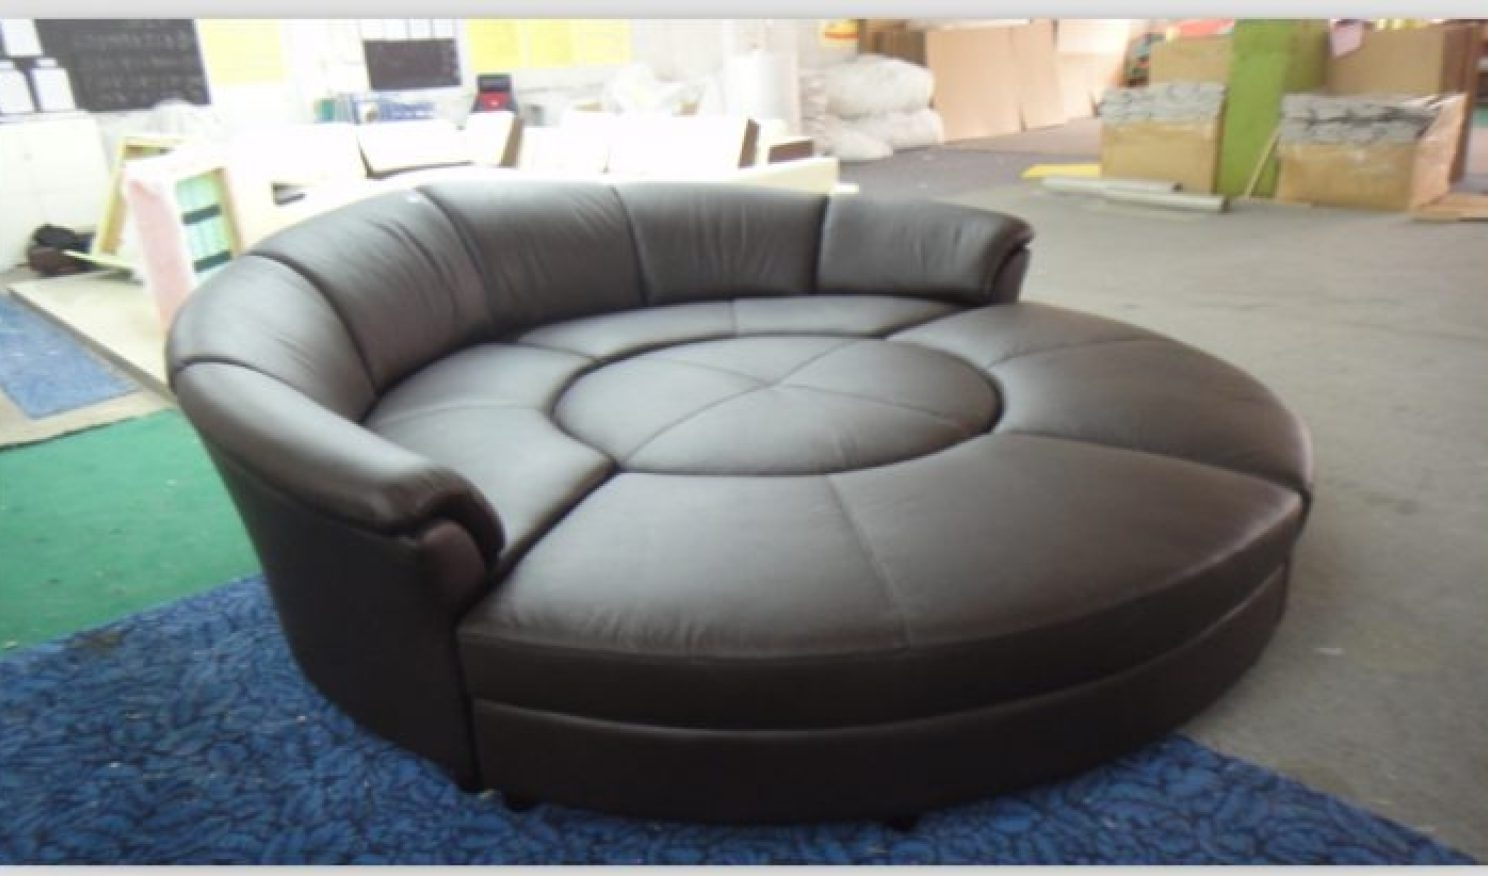 Preferred Sofa : Sofa Cute Big Chairs Stunning Circular Chair Explore Round Inside Big Sofa Chairs (View 9 of 20)